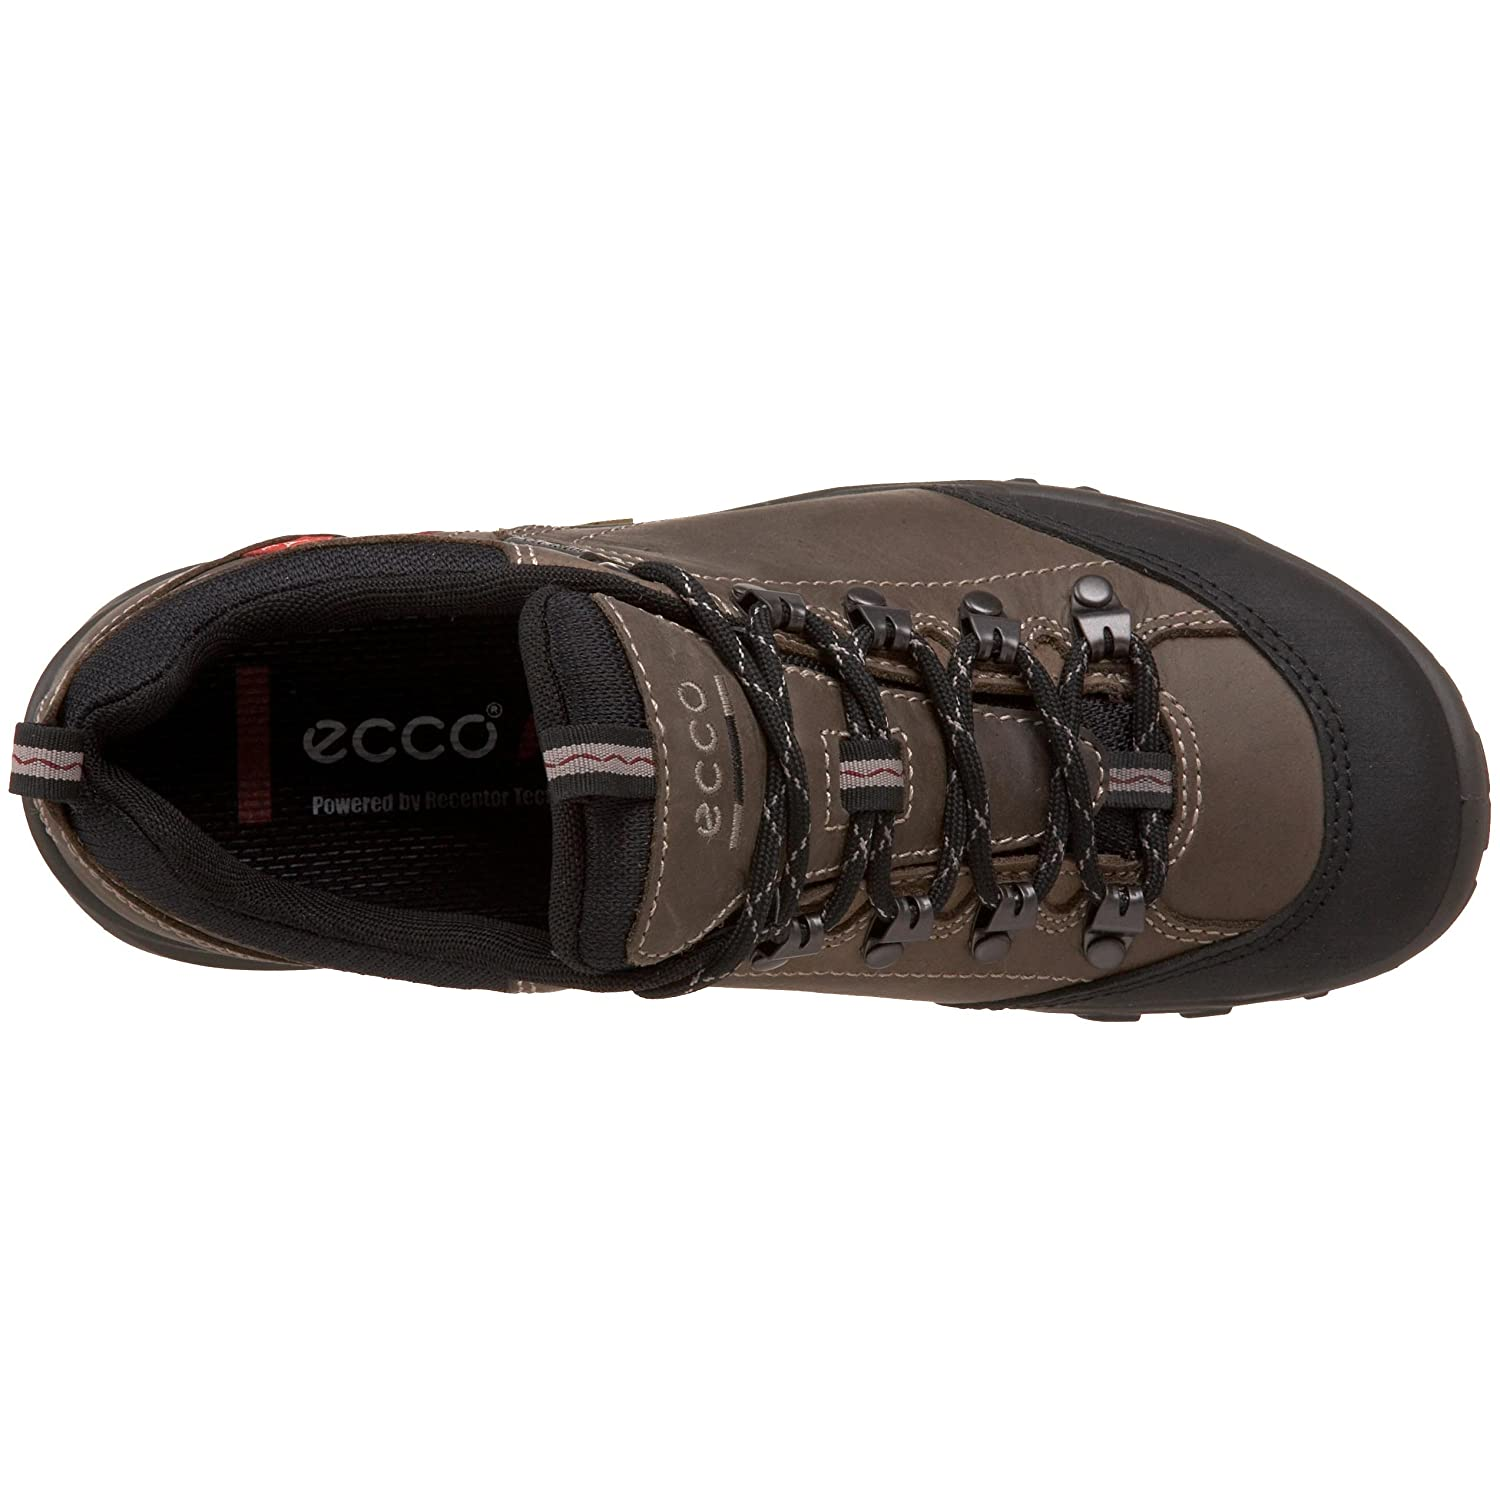 ECCO XPEDITION II: Amazon.co.uk: Shoes